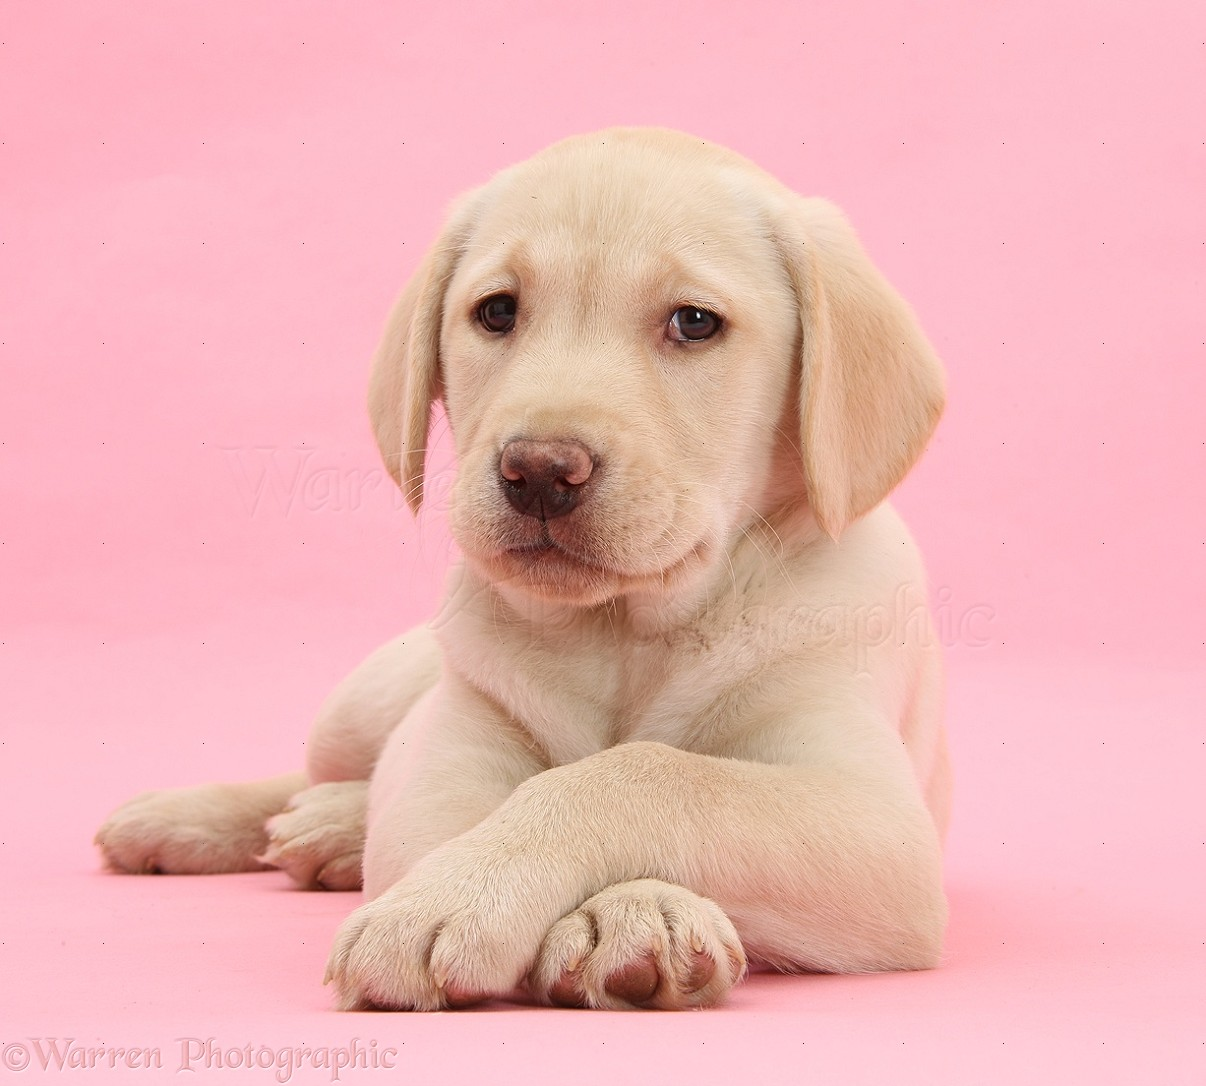 Dog Yellow Labrador Retriever Pup On Pink Background Photo Wp40038